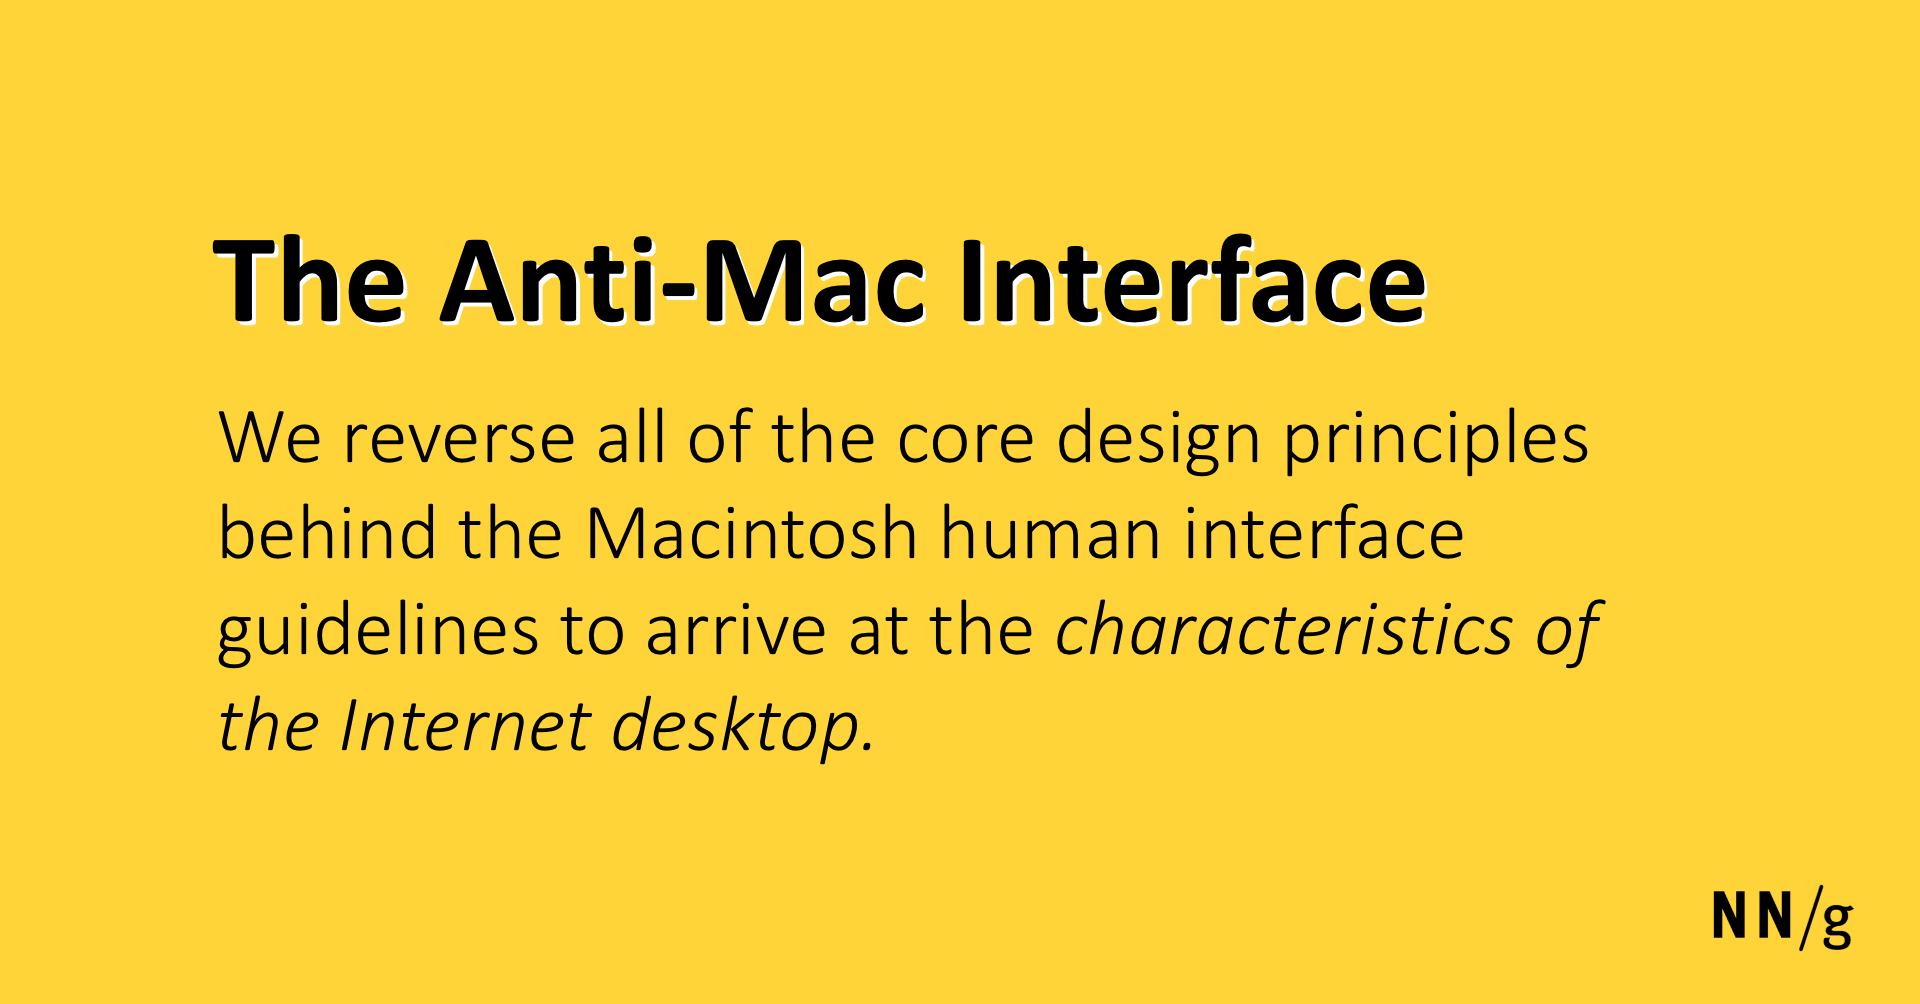 The Anti-Mac User Interface (Don Gentner and Jakob Nielsen)